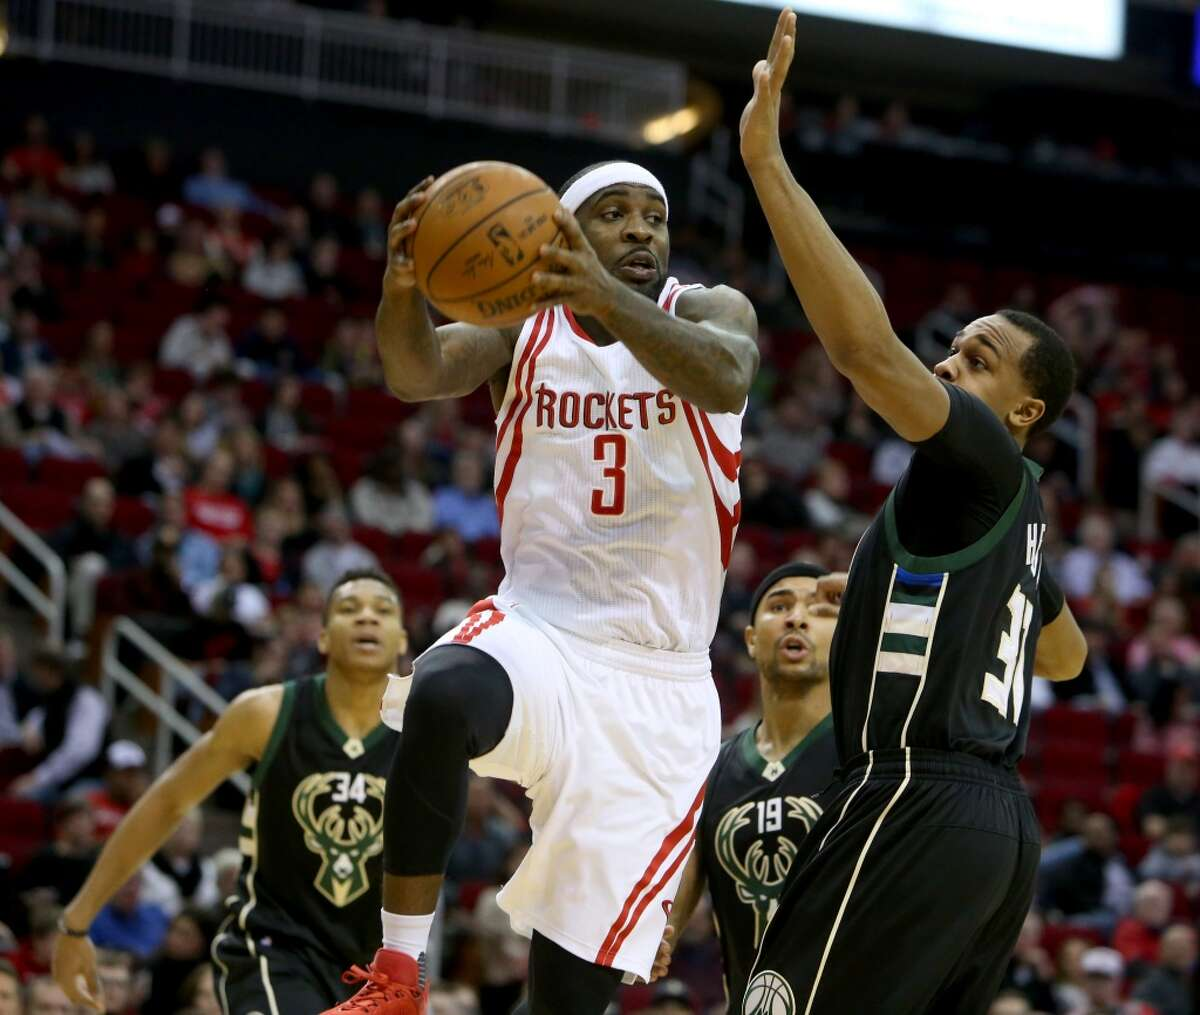 Ty Lawson, Rockets, 2015-16 The Rockets acquired him from Denver for a first-round pick during the offseason and he proved to be a terrible fit and was eventually bought out in March, becoming a microcosm of a massively underachieving campaign.